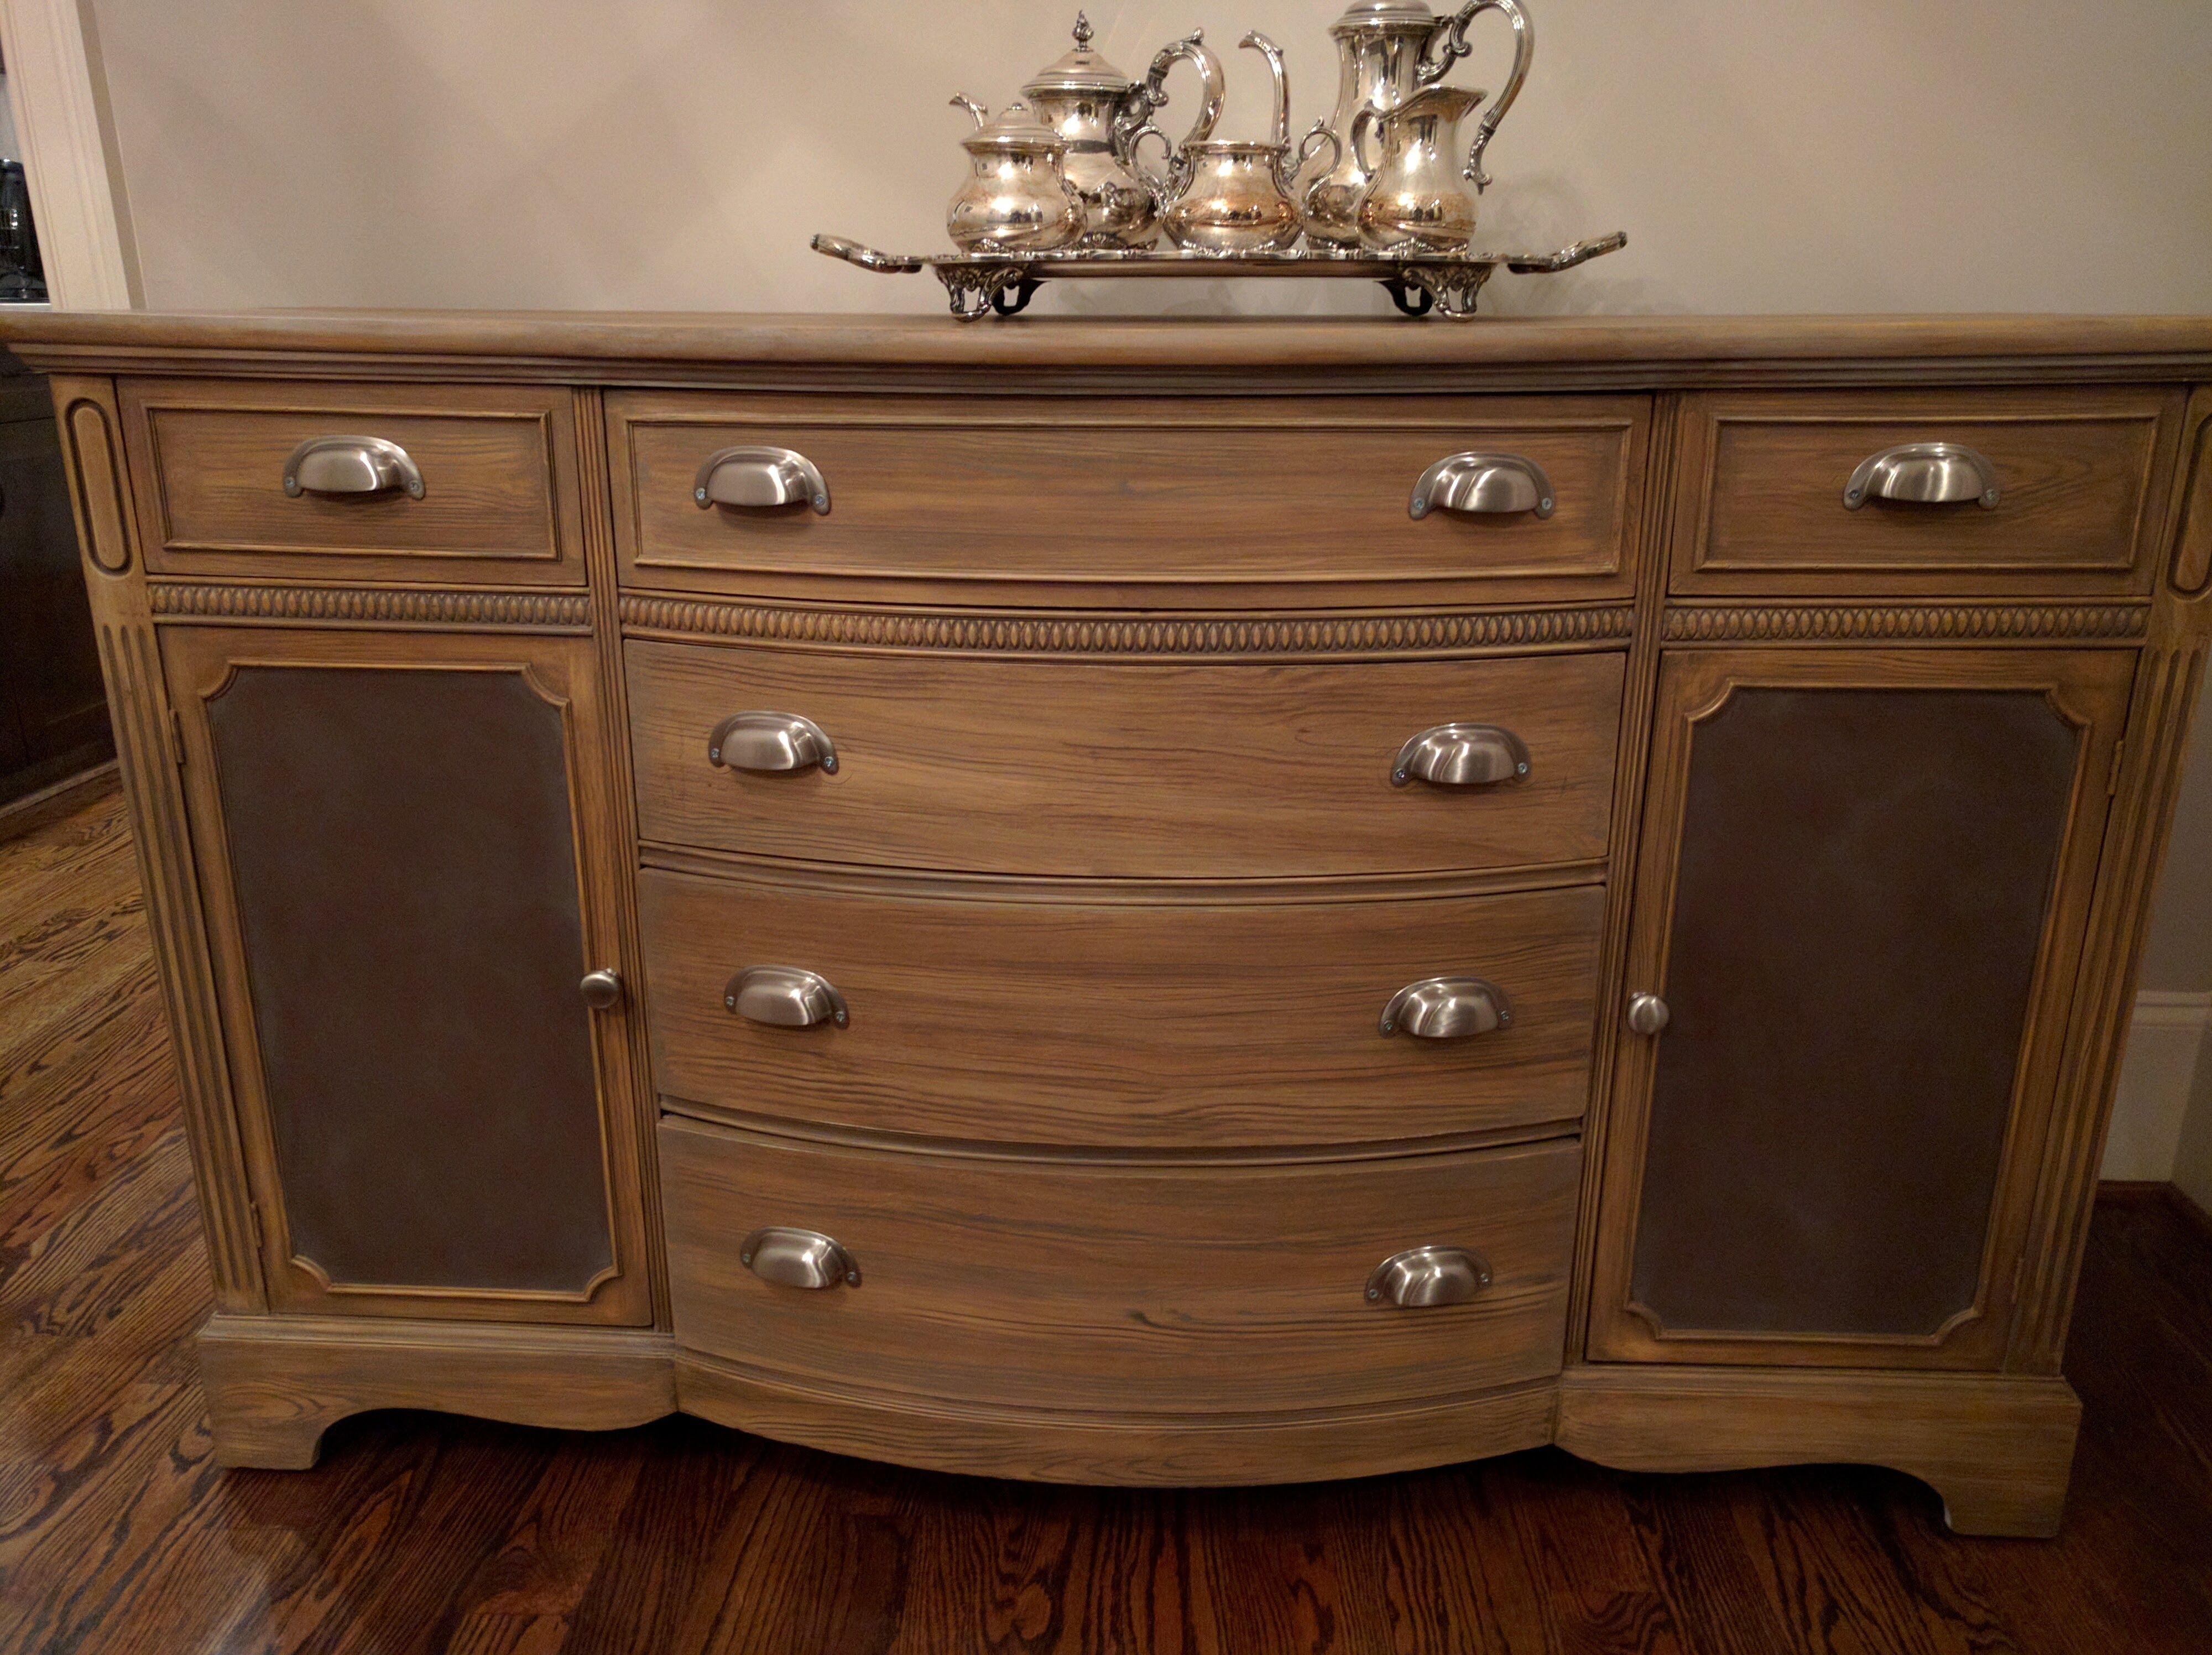 Faux wood Aged Buffet